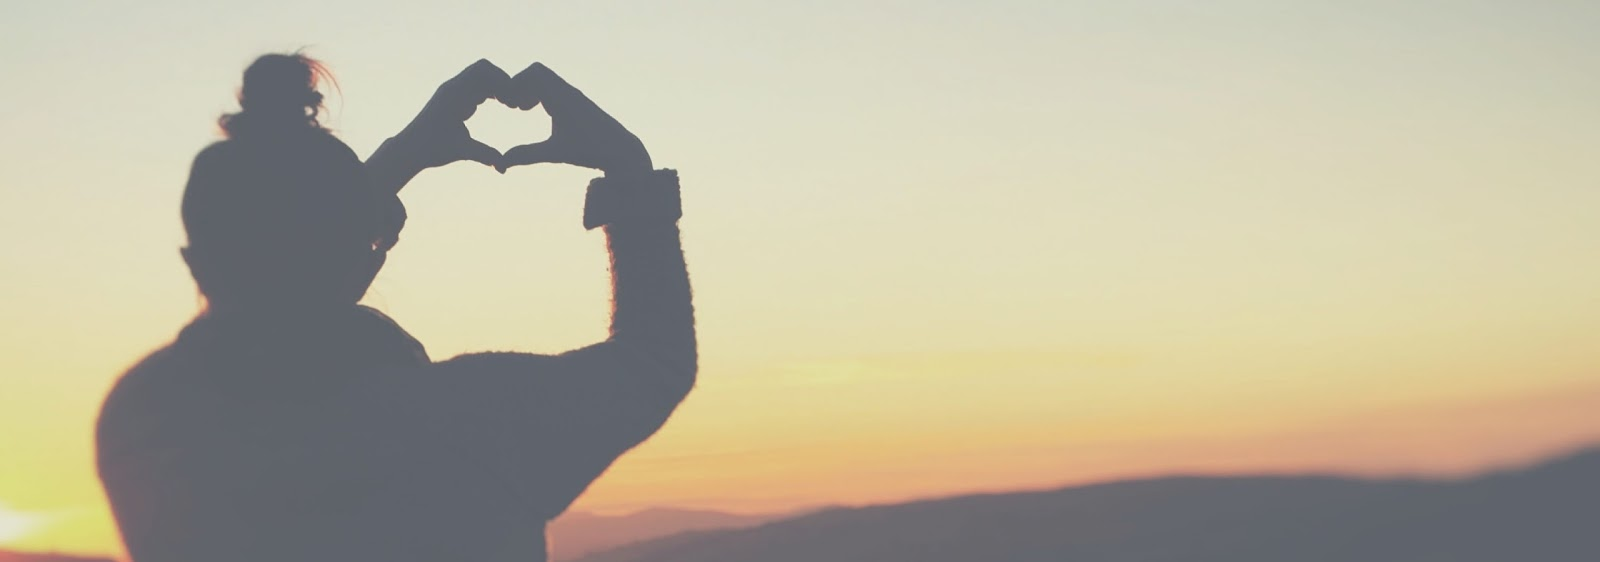 A woman silhouetted raising her hands and making a heart shape with them. She has her hair in a bun and is staring out at an orange sunset.